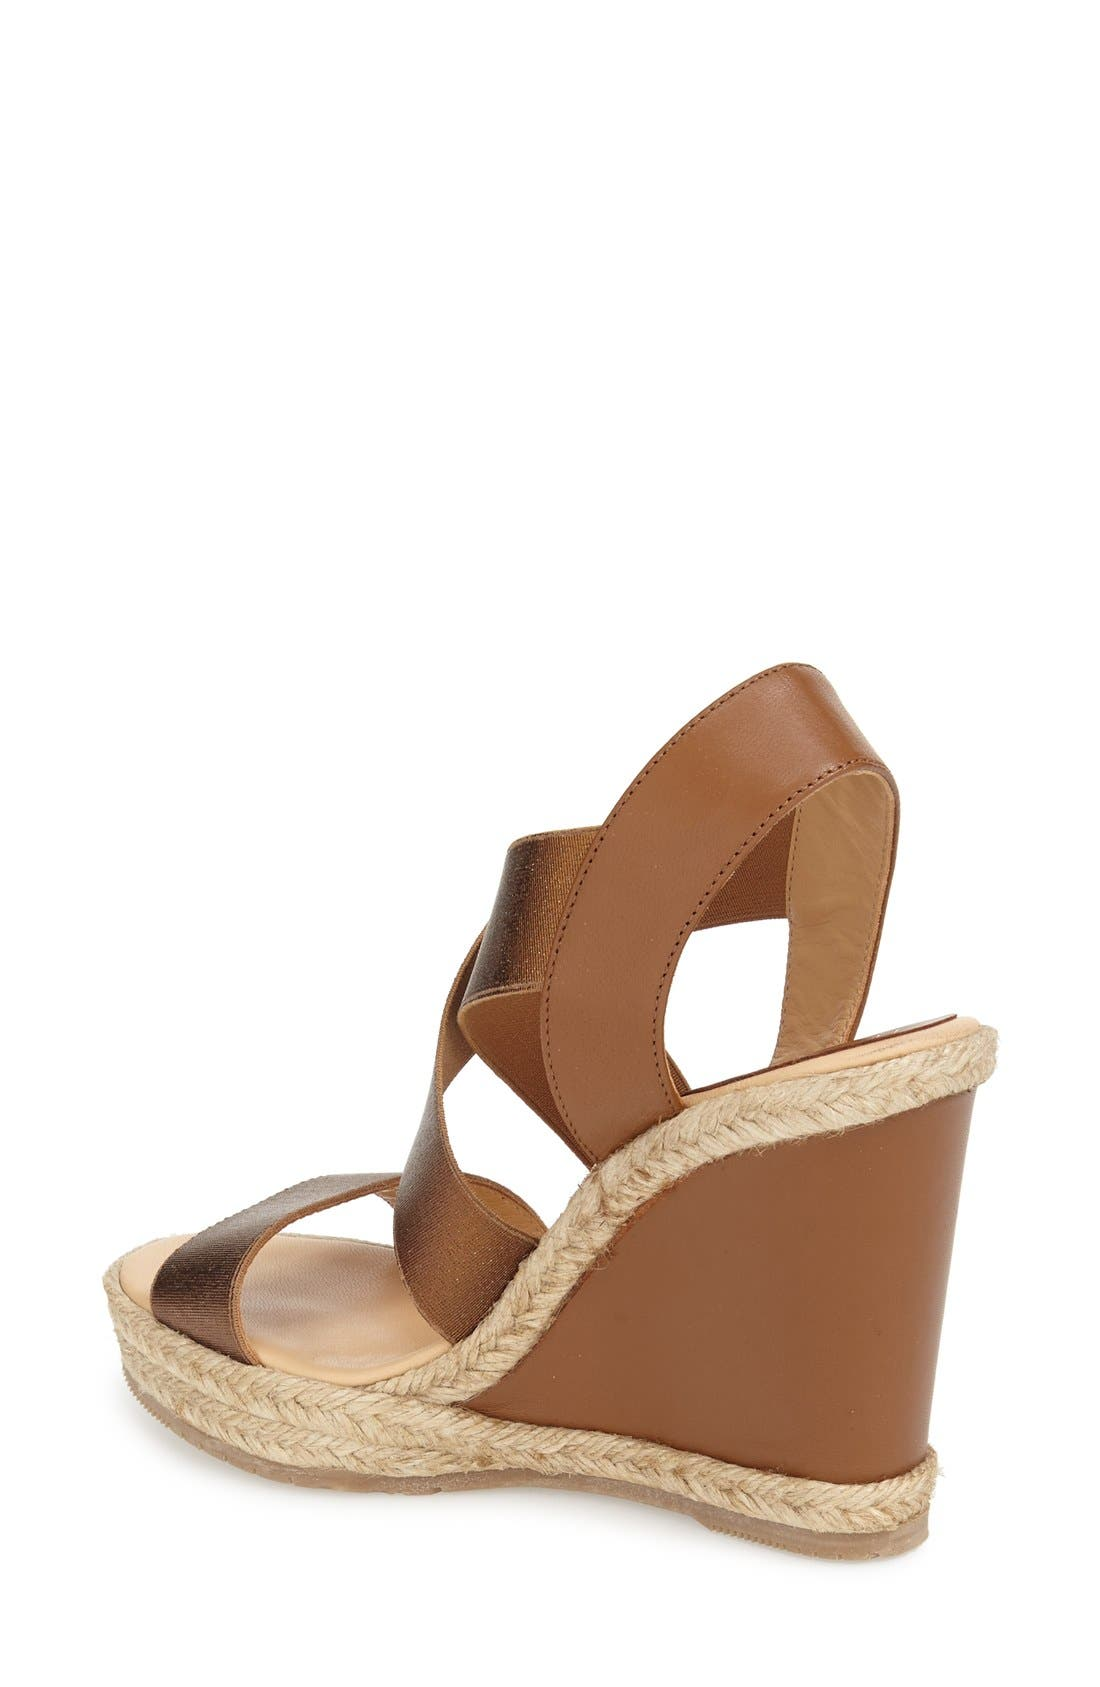 Alternate Image 2  - André Assous 'Cassandra' Wedge Sandal (Women)